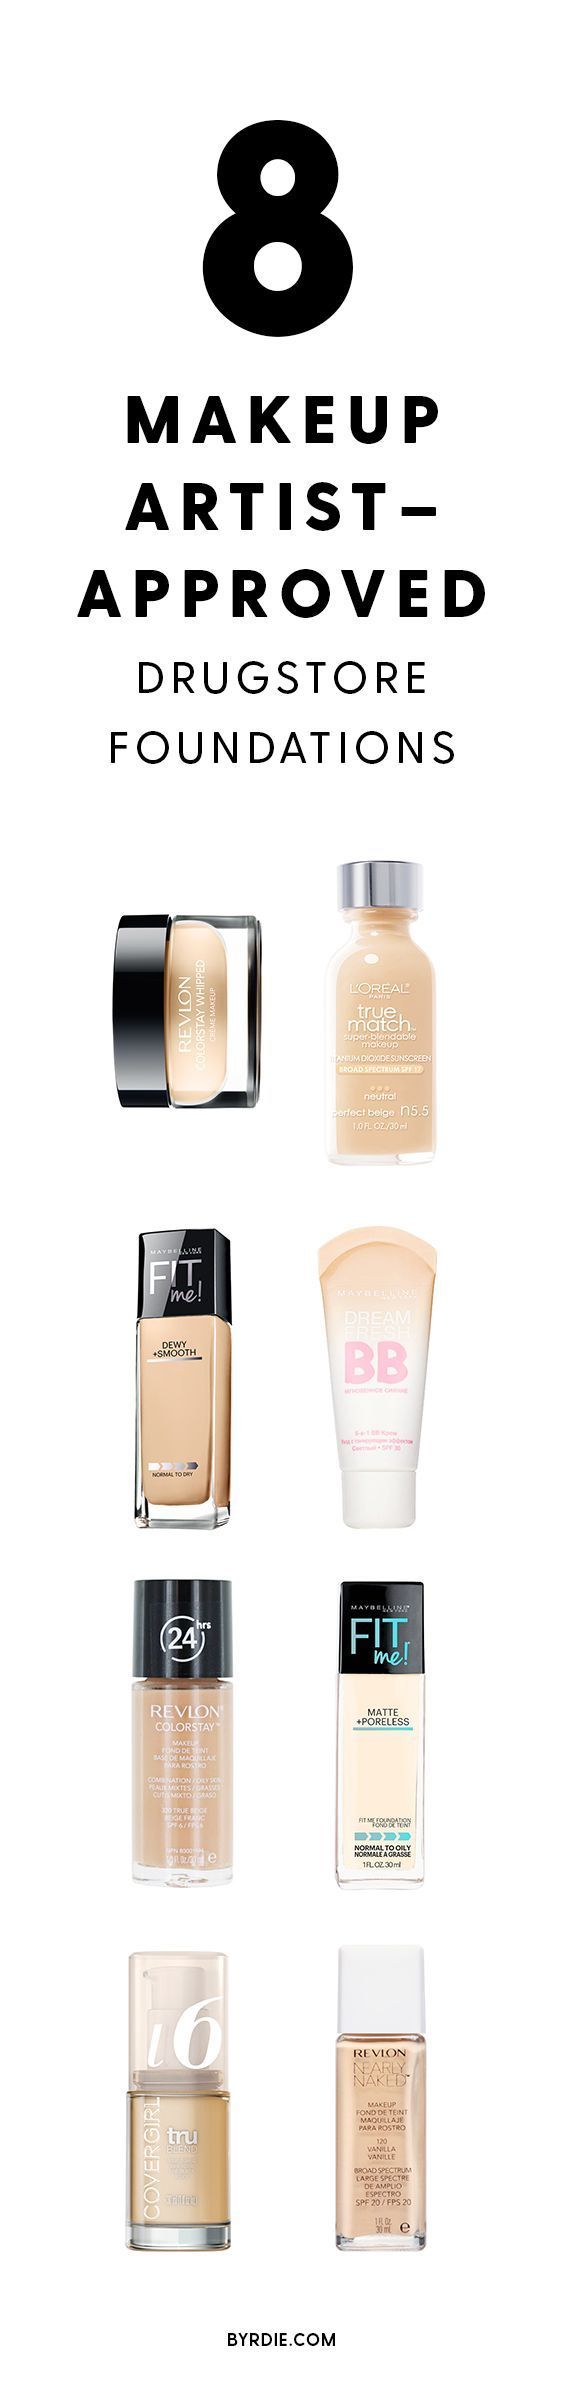 Makeup artist-approved drugstore foundations